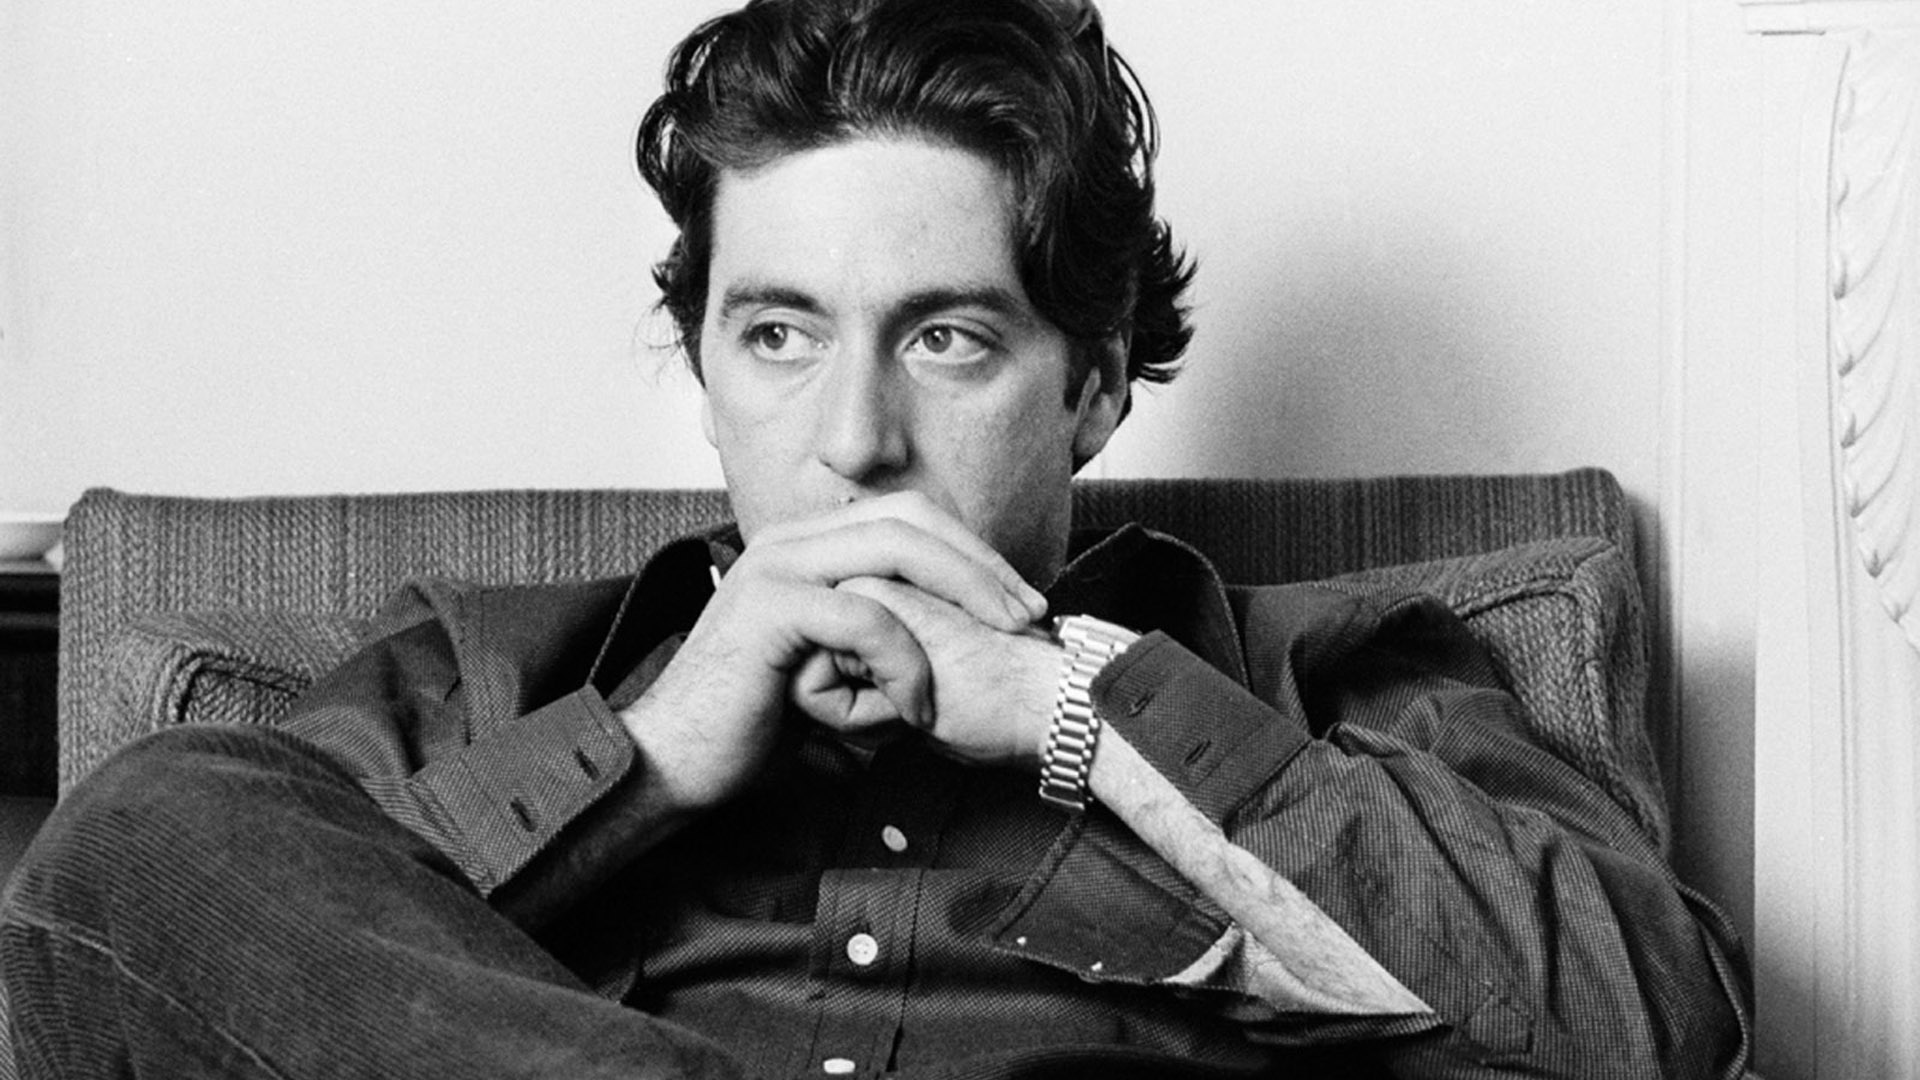 al pacino quotesal pacino filmi, al pacino young, al pacino 2016, al pacino godfather, al pacino movies, al pacino омск, al pacino днепр, al pacino quotes, al pacino height, al pacino 2017, al pacino красноярск, al pacino vse filmi, al pacino wiki, al pacino kimdir, al pacino net worth, al pacino foto, al pacino алматы, al pacino kino, al pacino tango, al pacino haqida